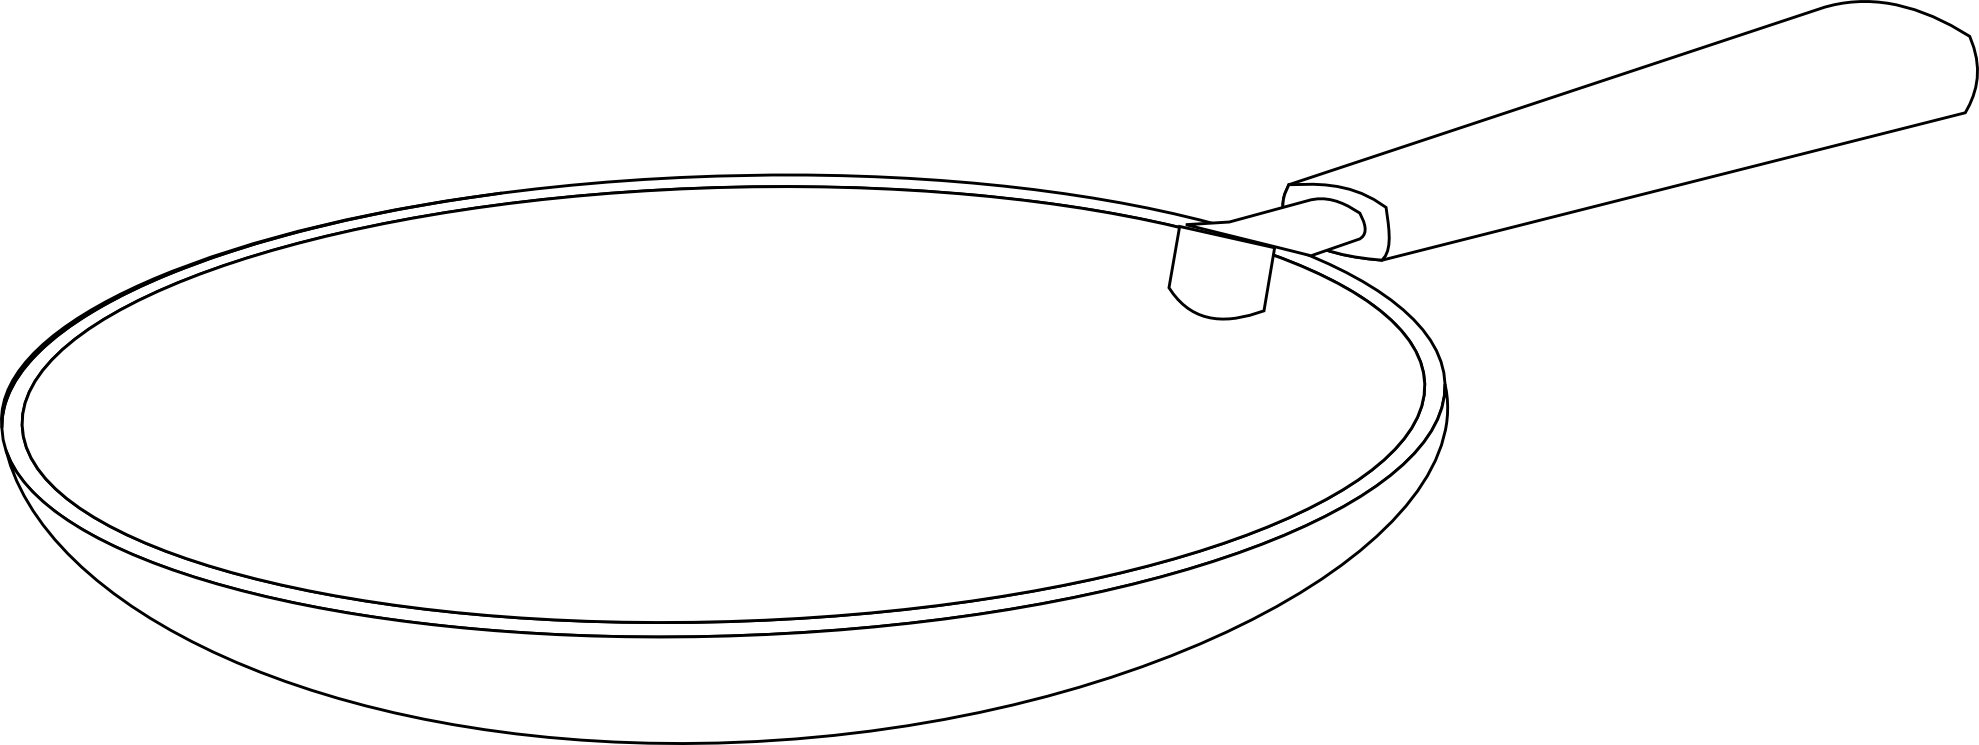 clip transparent stock Pan clipart black and white. Fans frying pencil in.